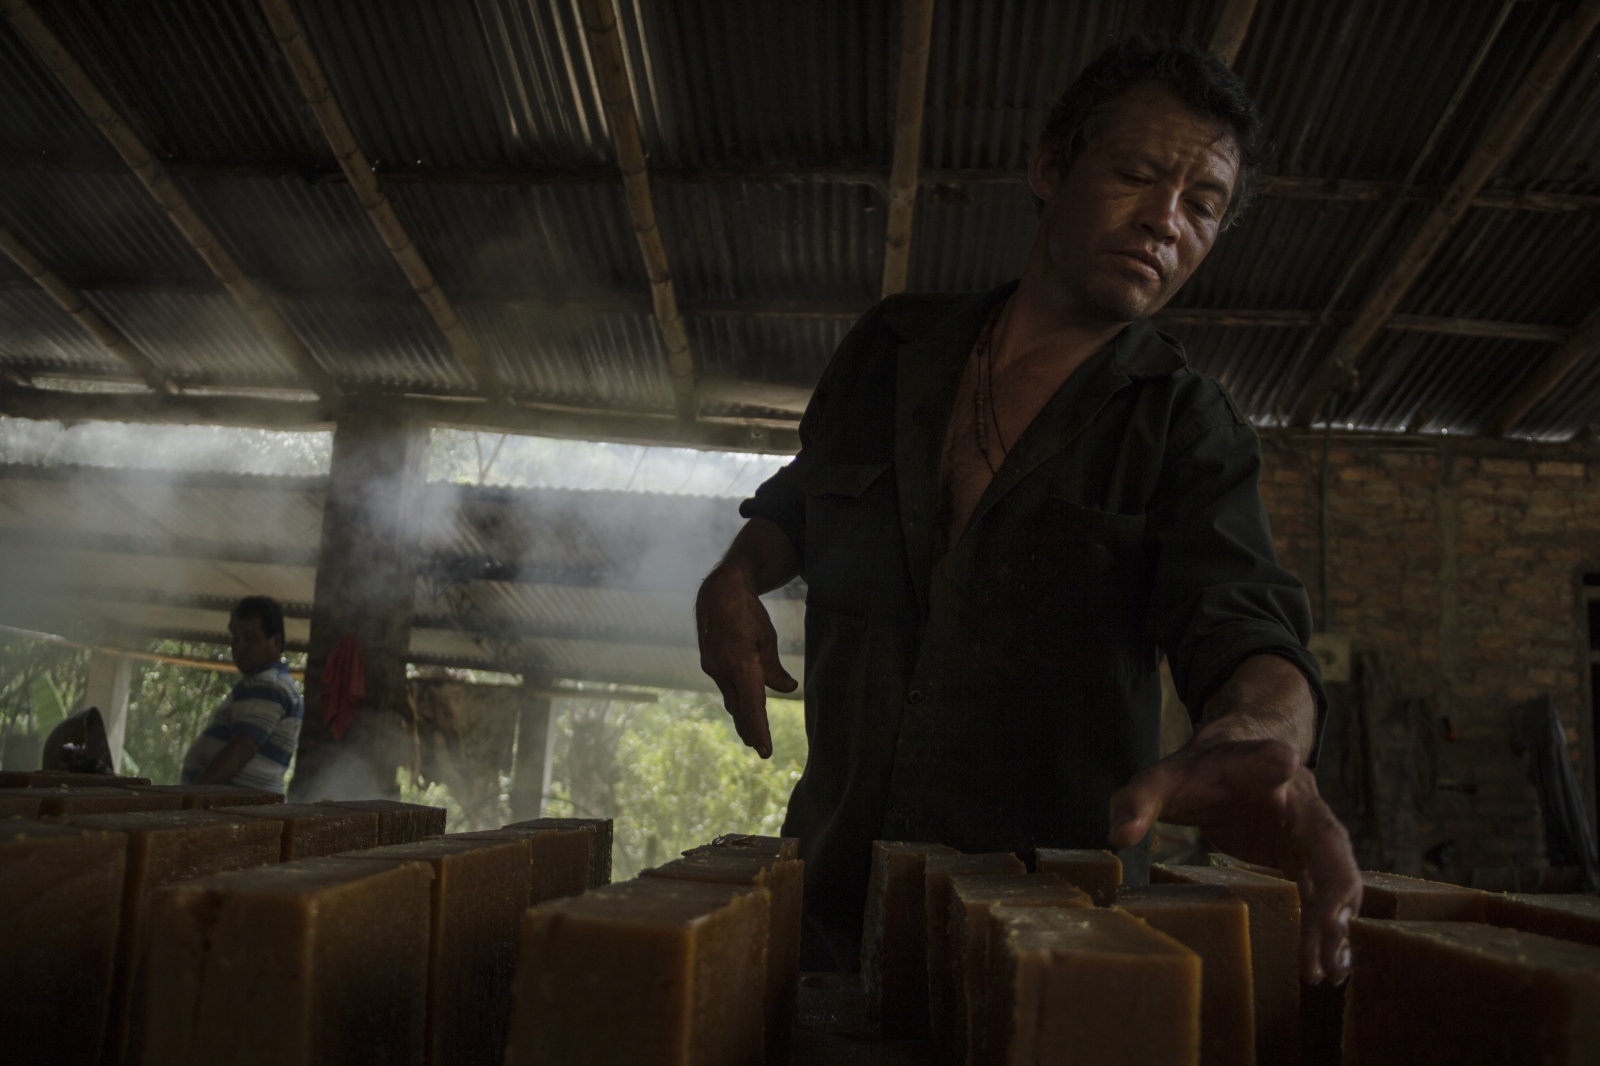 Don Ricardo, who is in charge of the panela molds, told me how almost a month ago he lost a finger in one of the mills where he also works. This shows the hard way that the panela, La Virgen and its people have to take to get the aguapanela drinken by the Colombians. (2016)